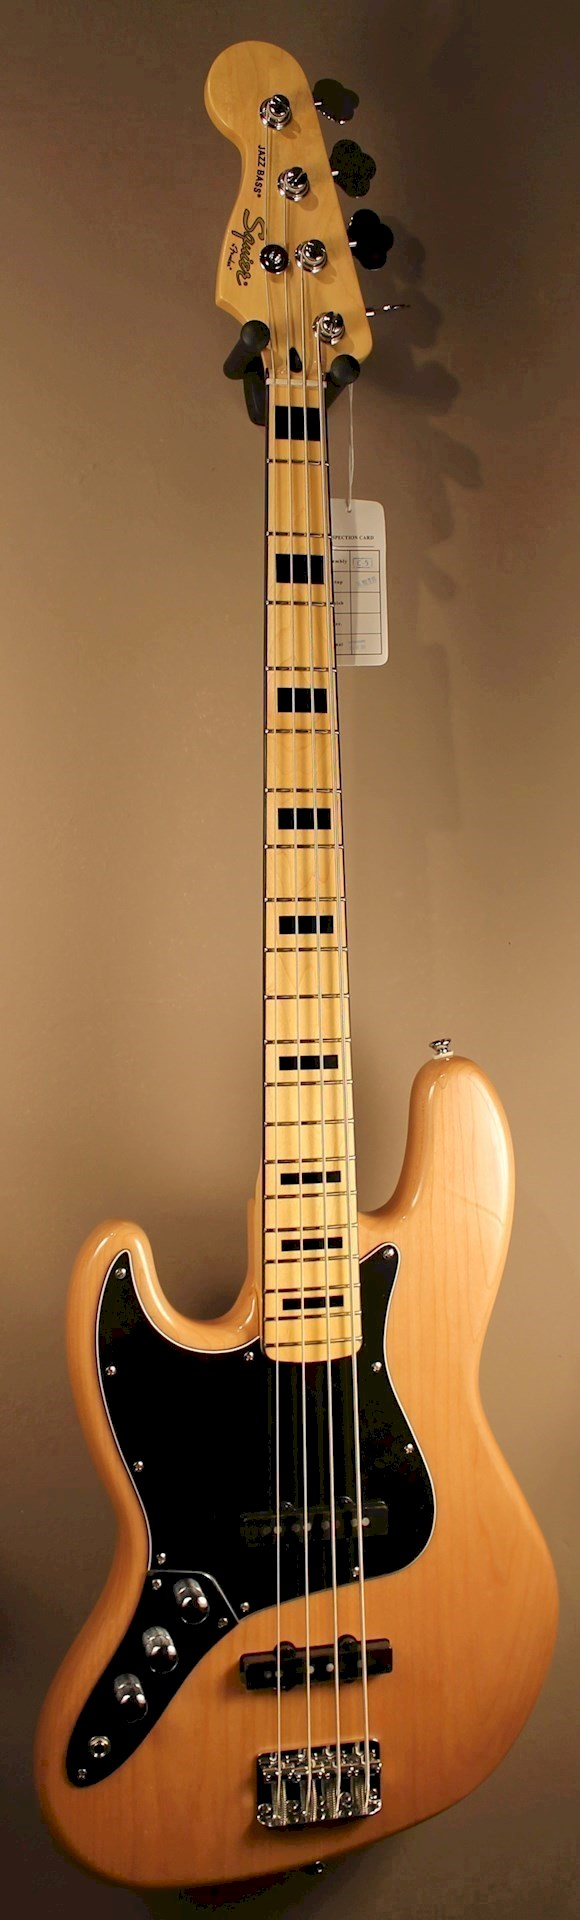 Squier vintage modified s jazz bass remarkable, very